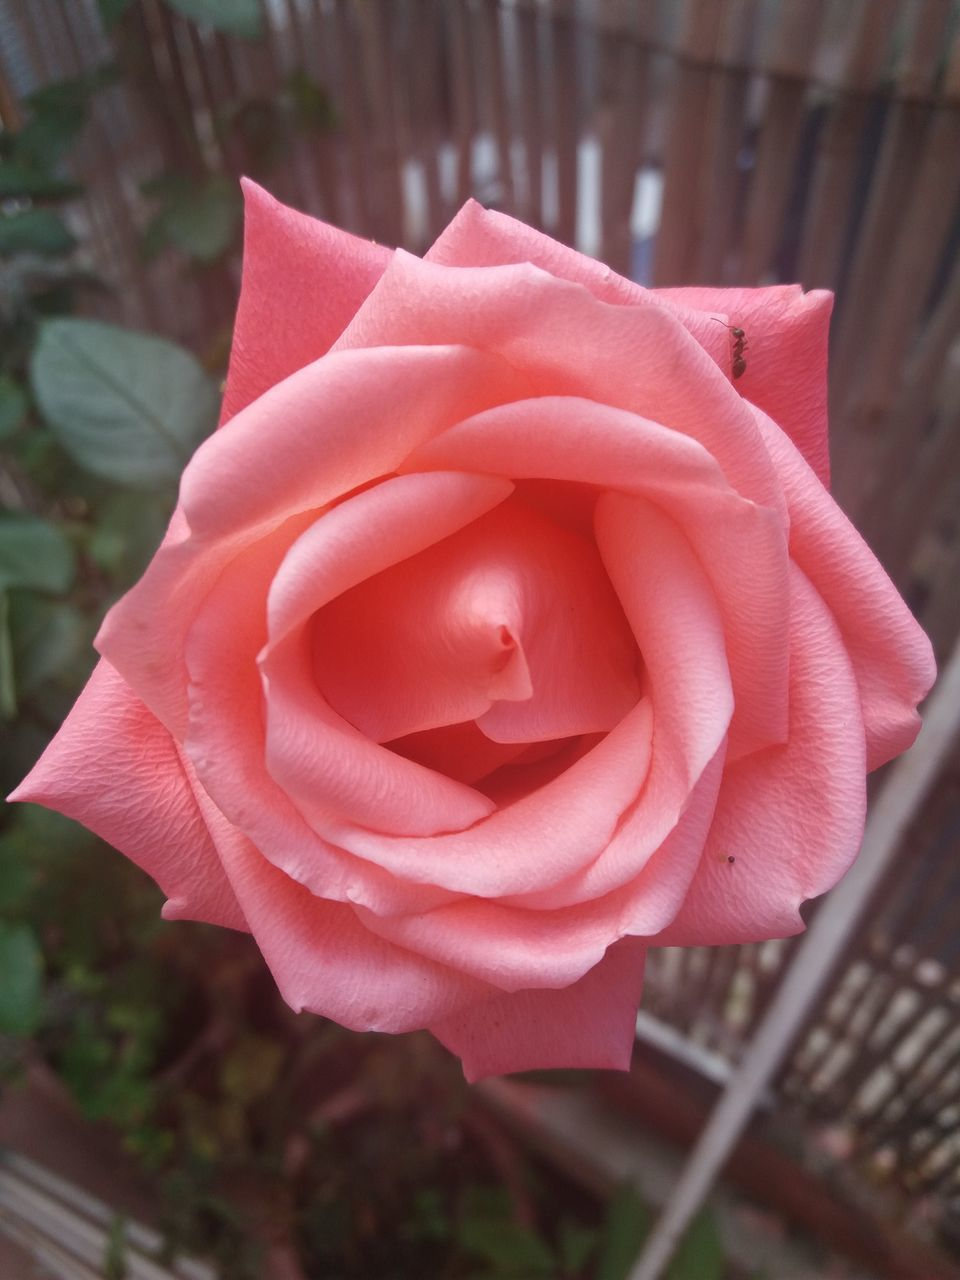 CLOSE-UP OF PINK ROSE IN SUNLIGHT